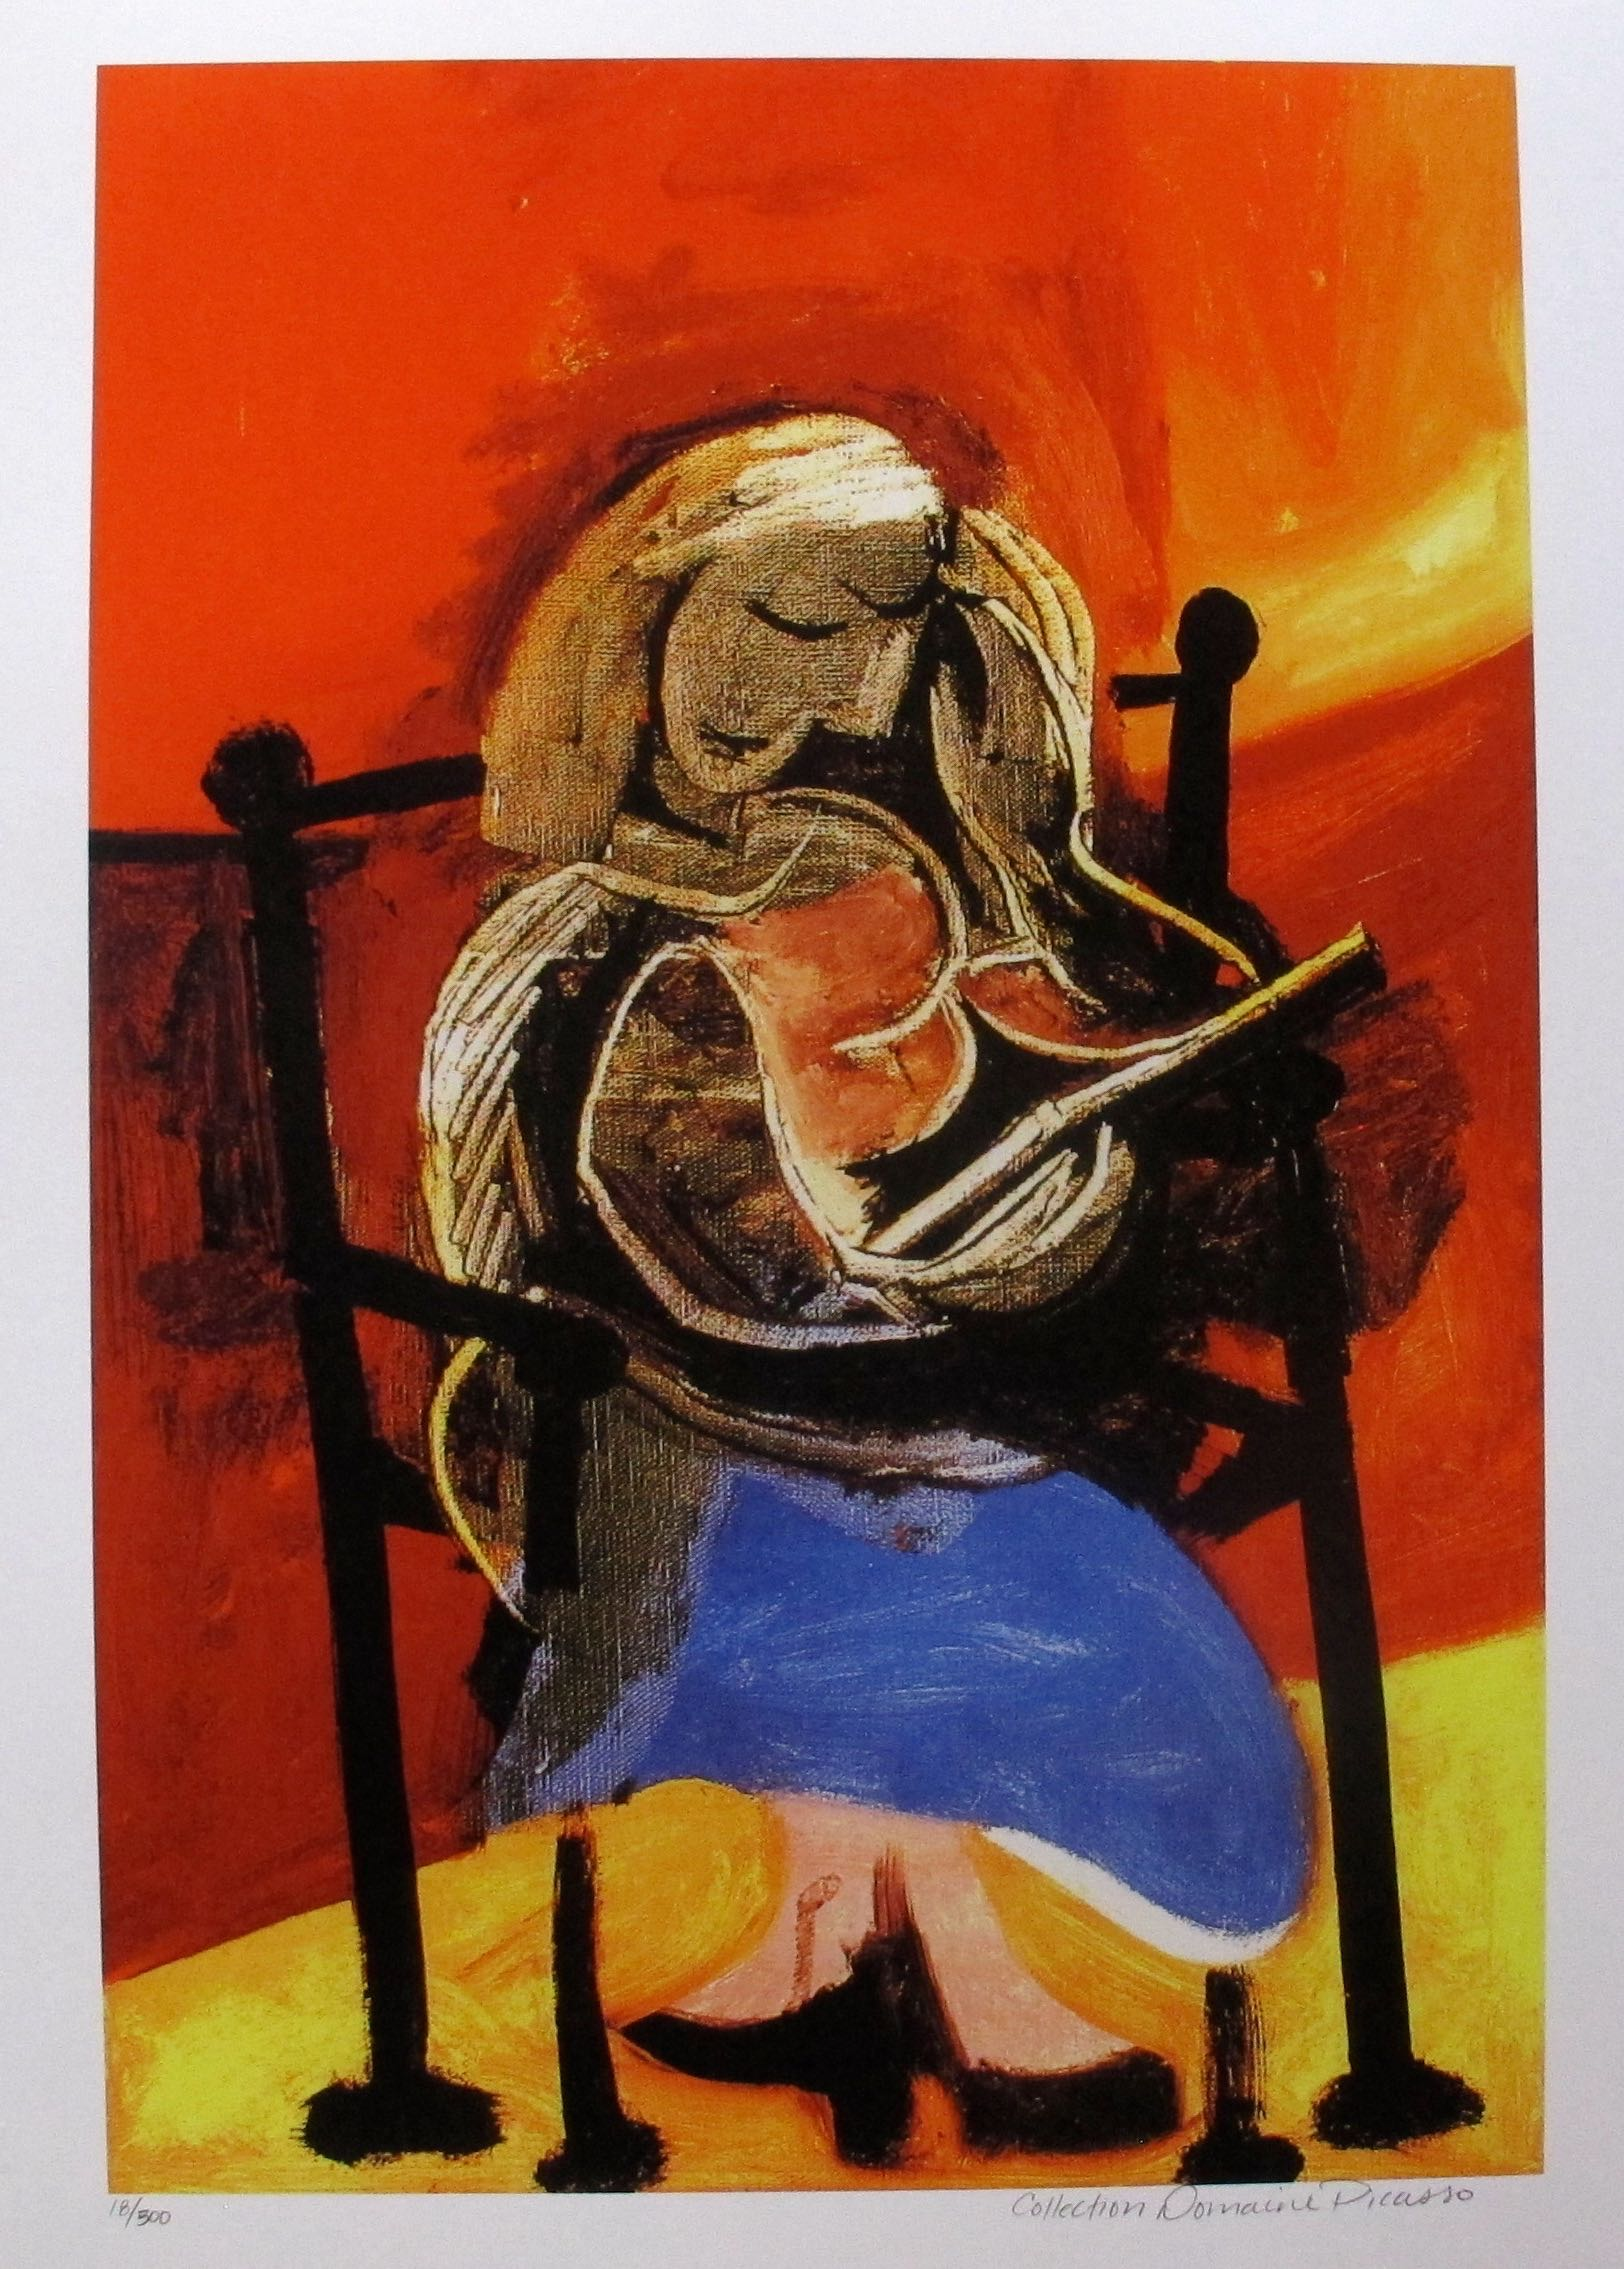 """SEATED WOMAN READING Pablo Picasso Estate Signed Giclee $299.99 $99.99 This is a PABLO PICASSO (ESTATE COLLECTION DOMAINE) (1881-1973) giclee titled """"SEATED WOMAN READING"""". Category: PICASSO, Pablo #81-151. Tags: Fine Art, Giclee, Pablo Picasso."""